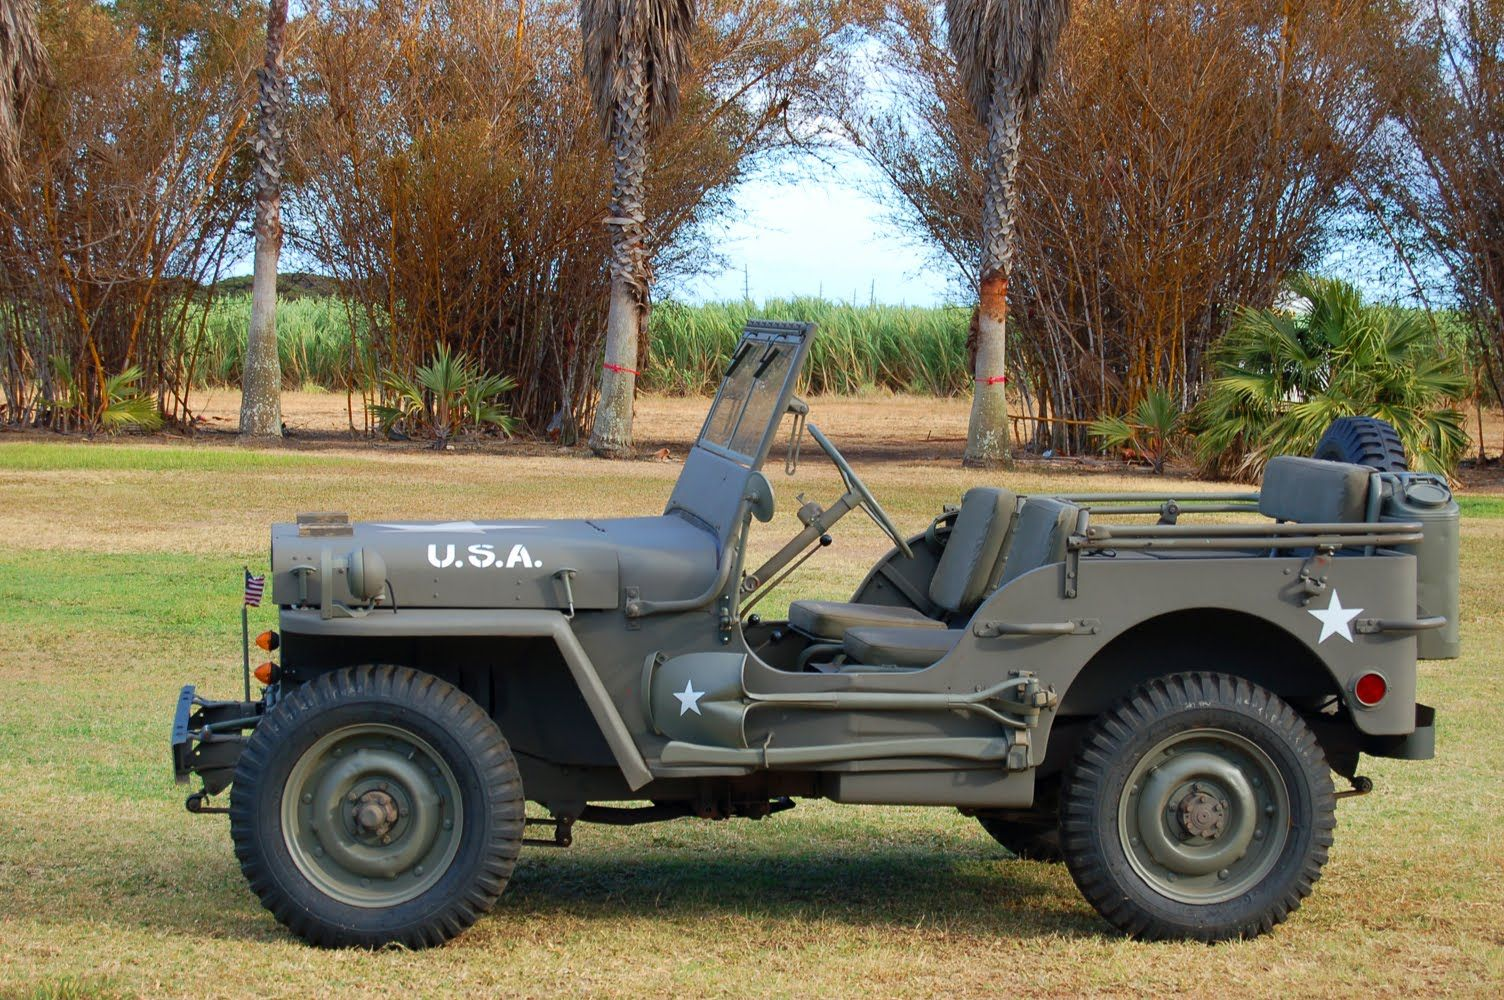 My Dad Taught Me To Drive In An Old Jeep Like This He Was A Farm